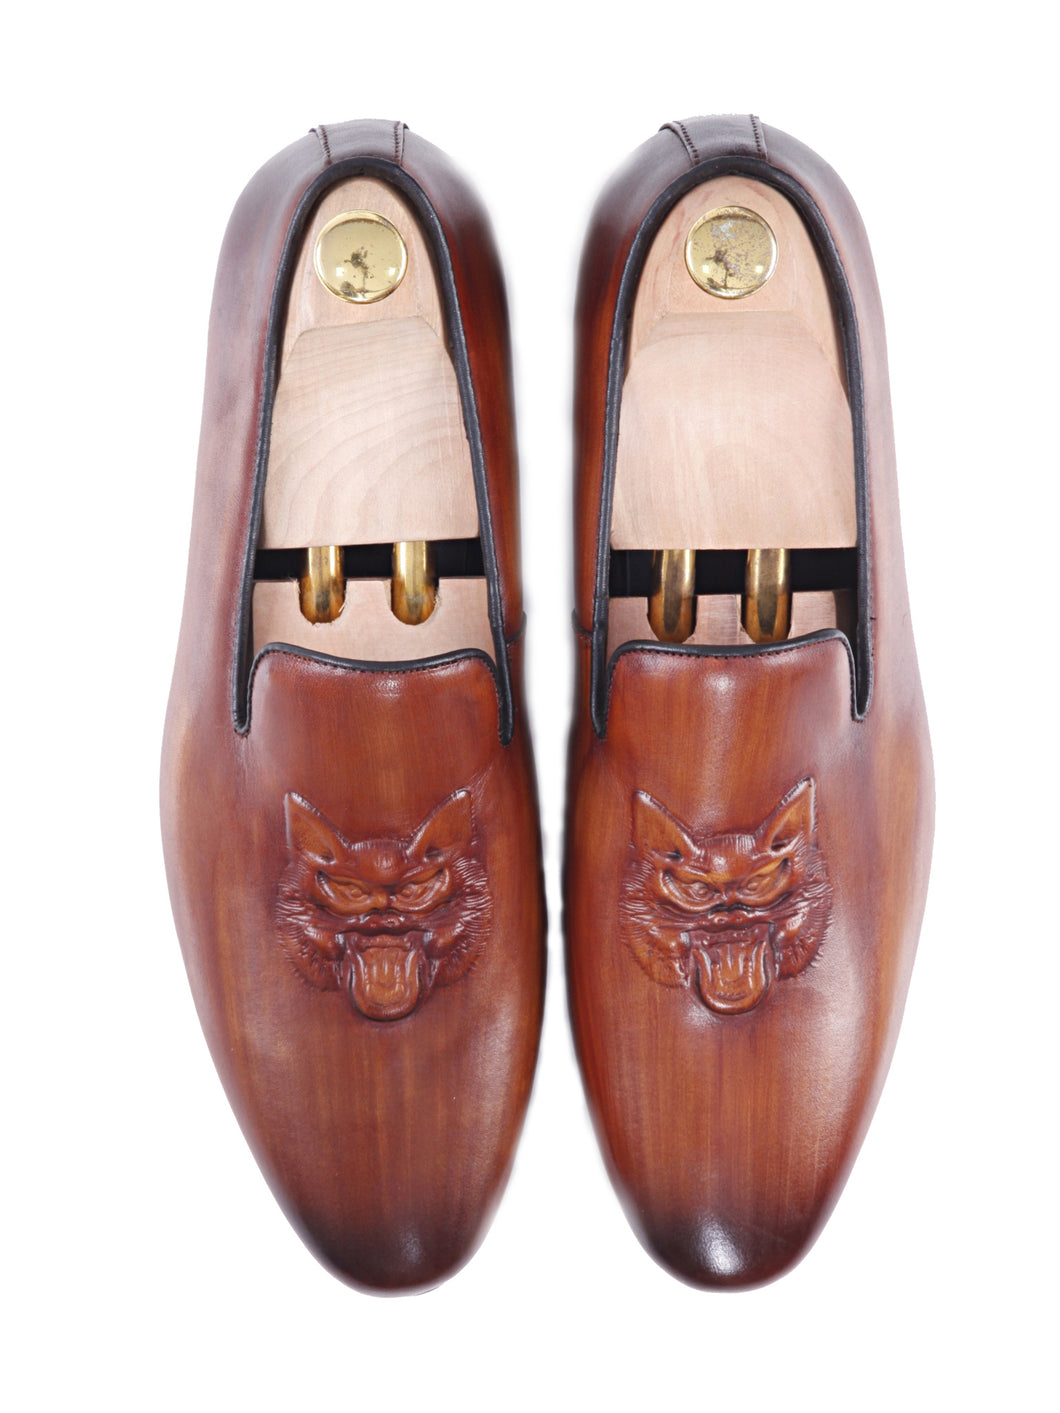 Loafer Slipper - Cognac Tan Wolf Embossed Leather (Hand Painted Patina)